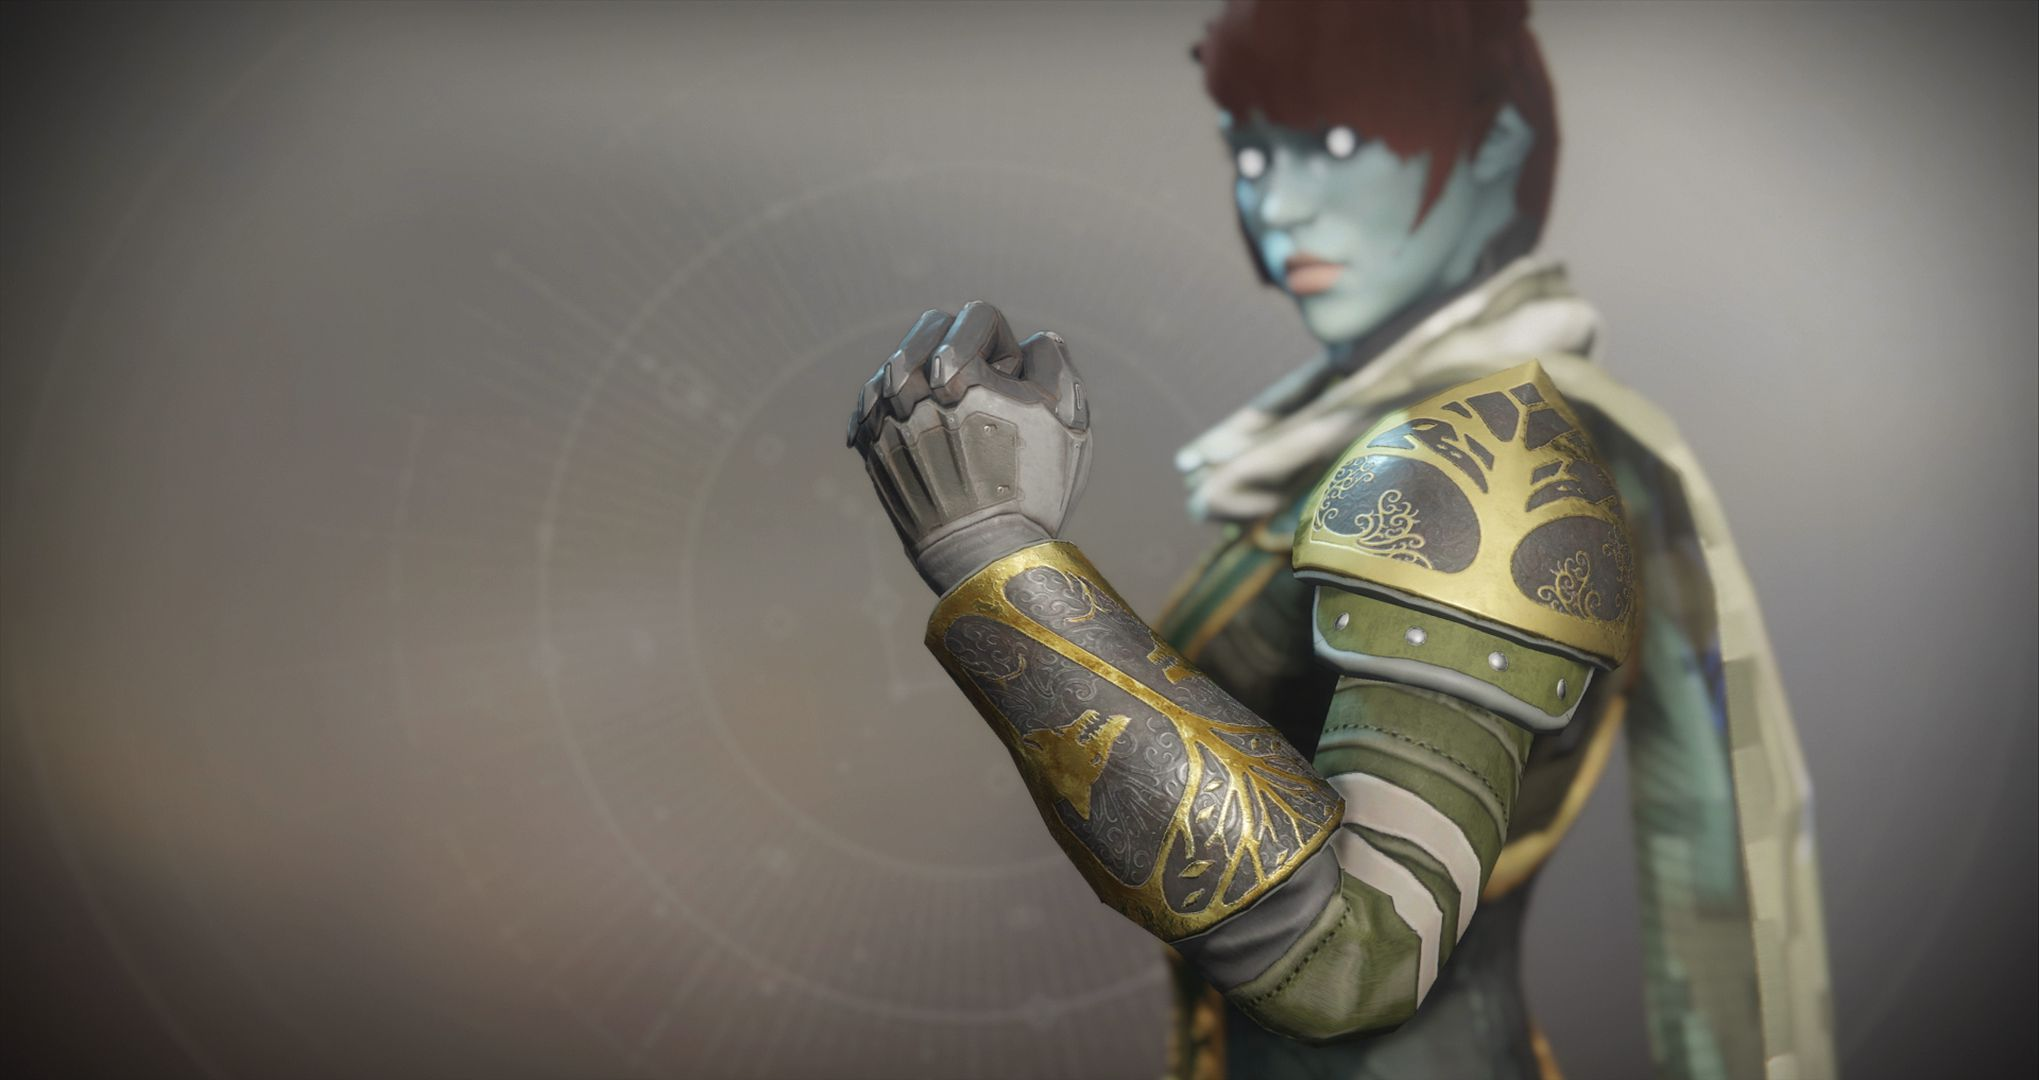 Destiny 2 Iron Banner Guide Weapons Armor And More